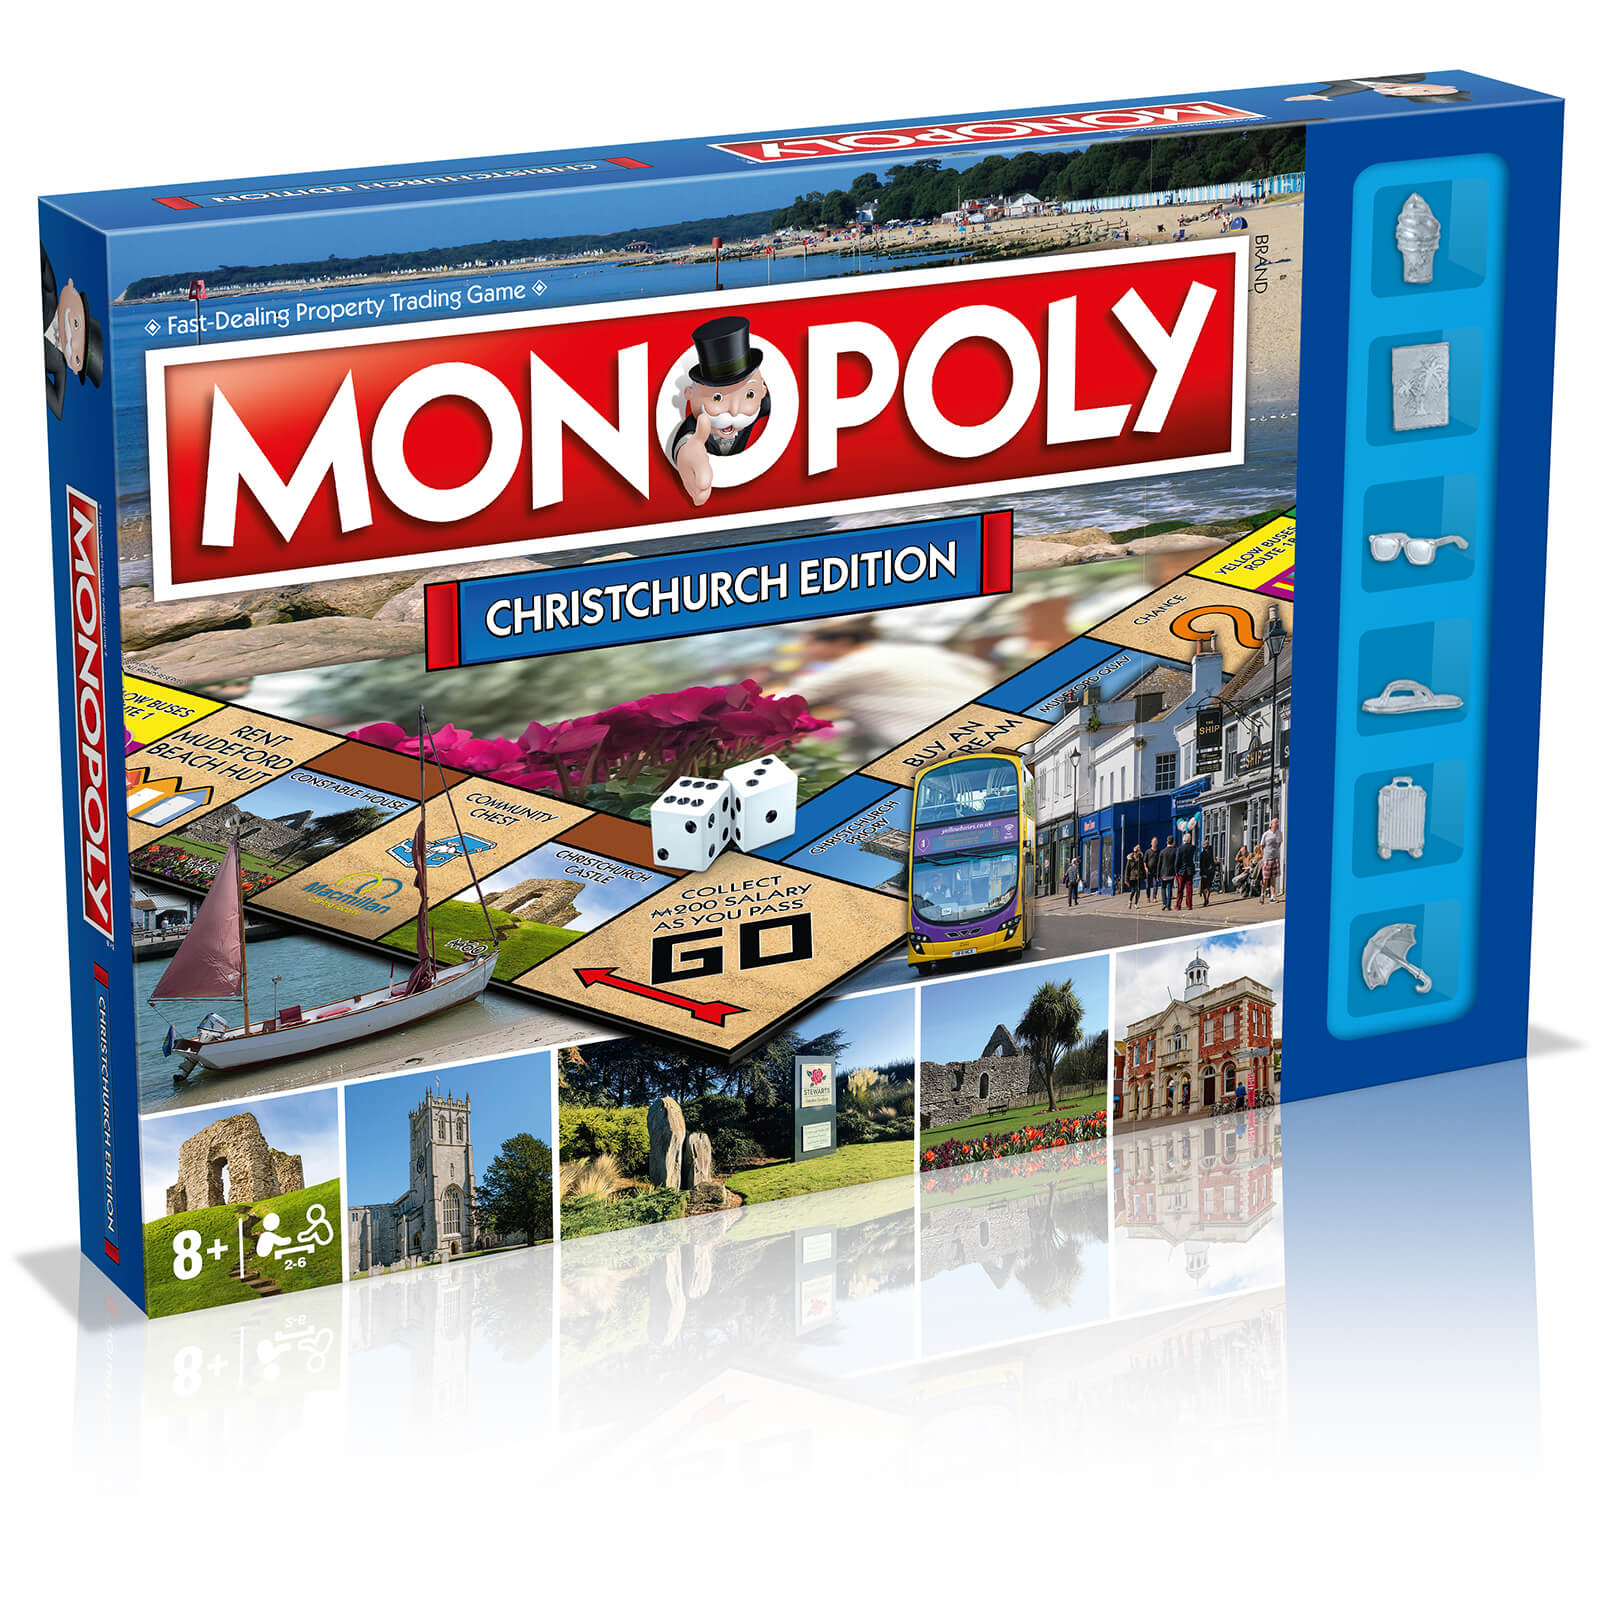 Image of Monopoly Board Game - Christchurch Edition